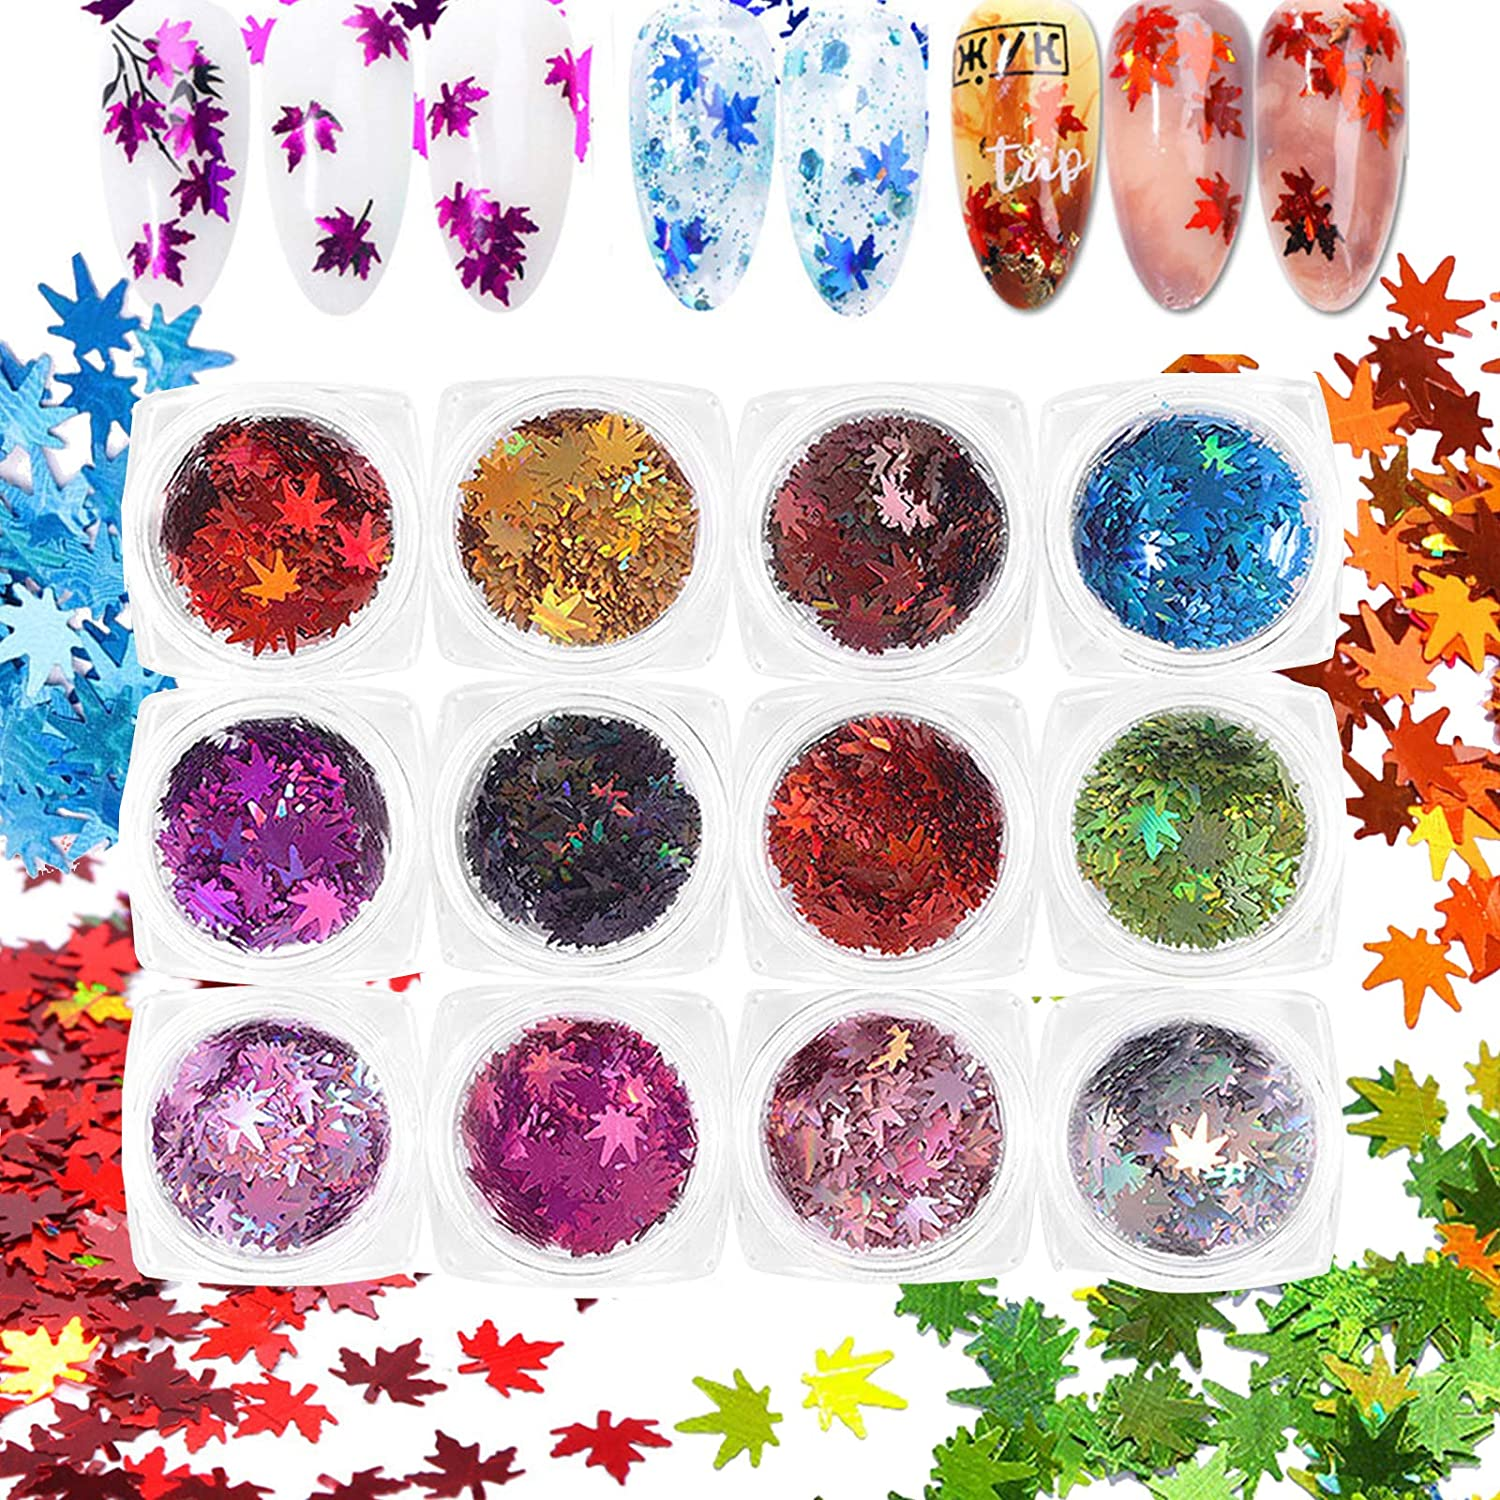 MiaoWu 12 Colors Fall Nail Art Stickers Maple Leaf Glitter Nail Sequins Holographic 3D Laser Flakes Fall Glitter Nail Art Supplies Autumn Maple Leaves Glitter For Nails Autumn Design Decor(12 boxes)